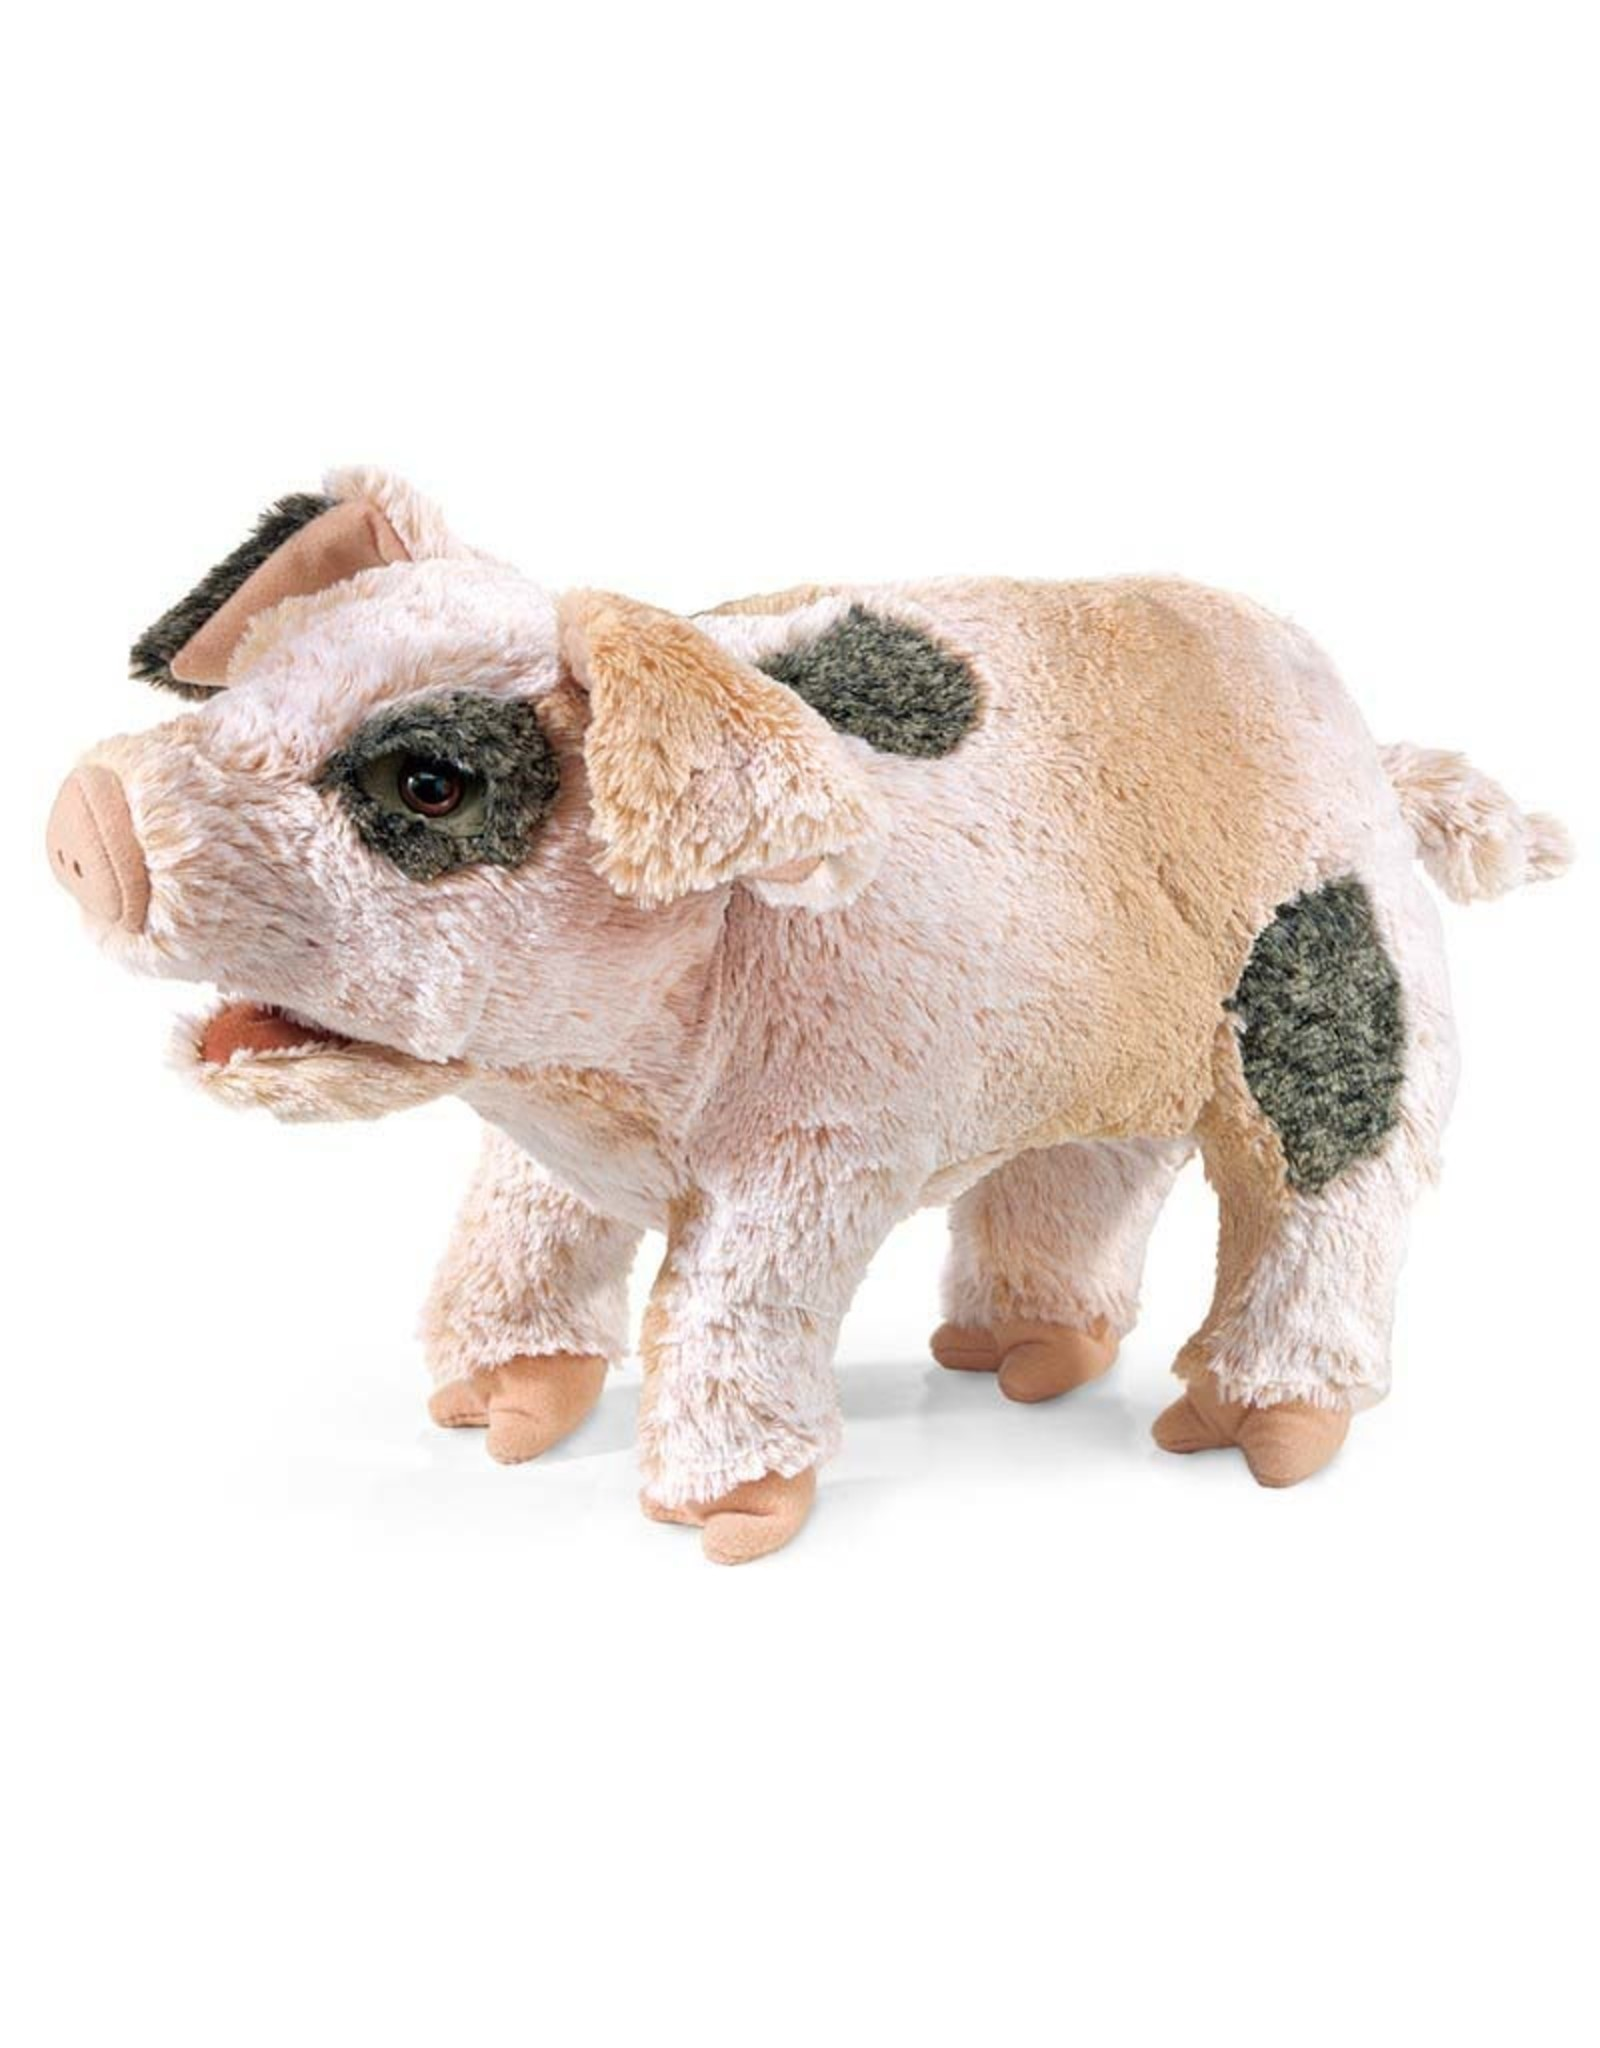 Folkmanis Folkmanis PIG, GRUNTING Puppet